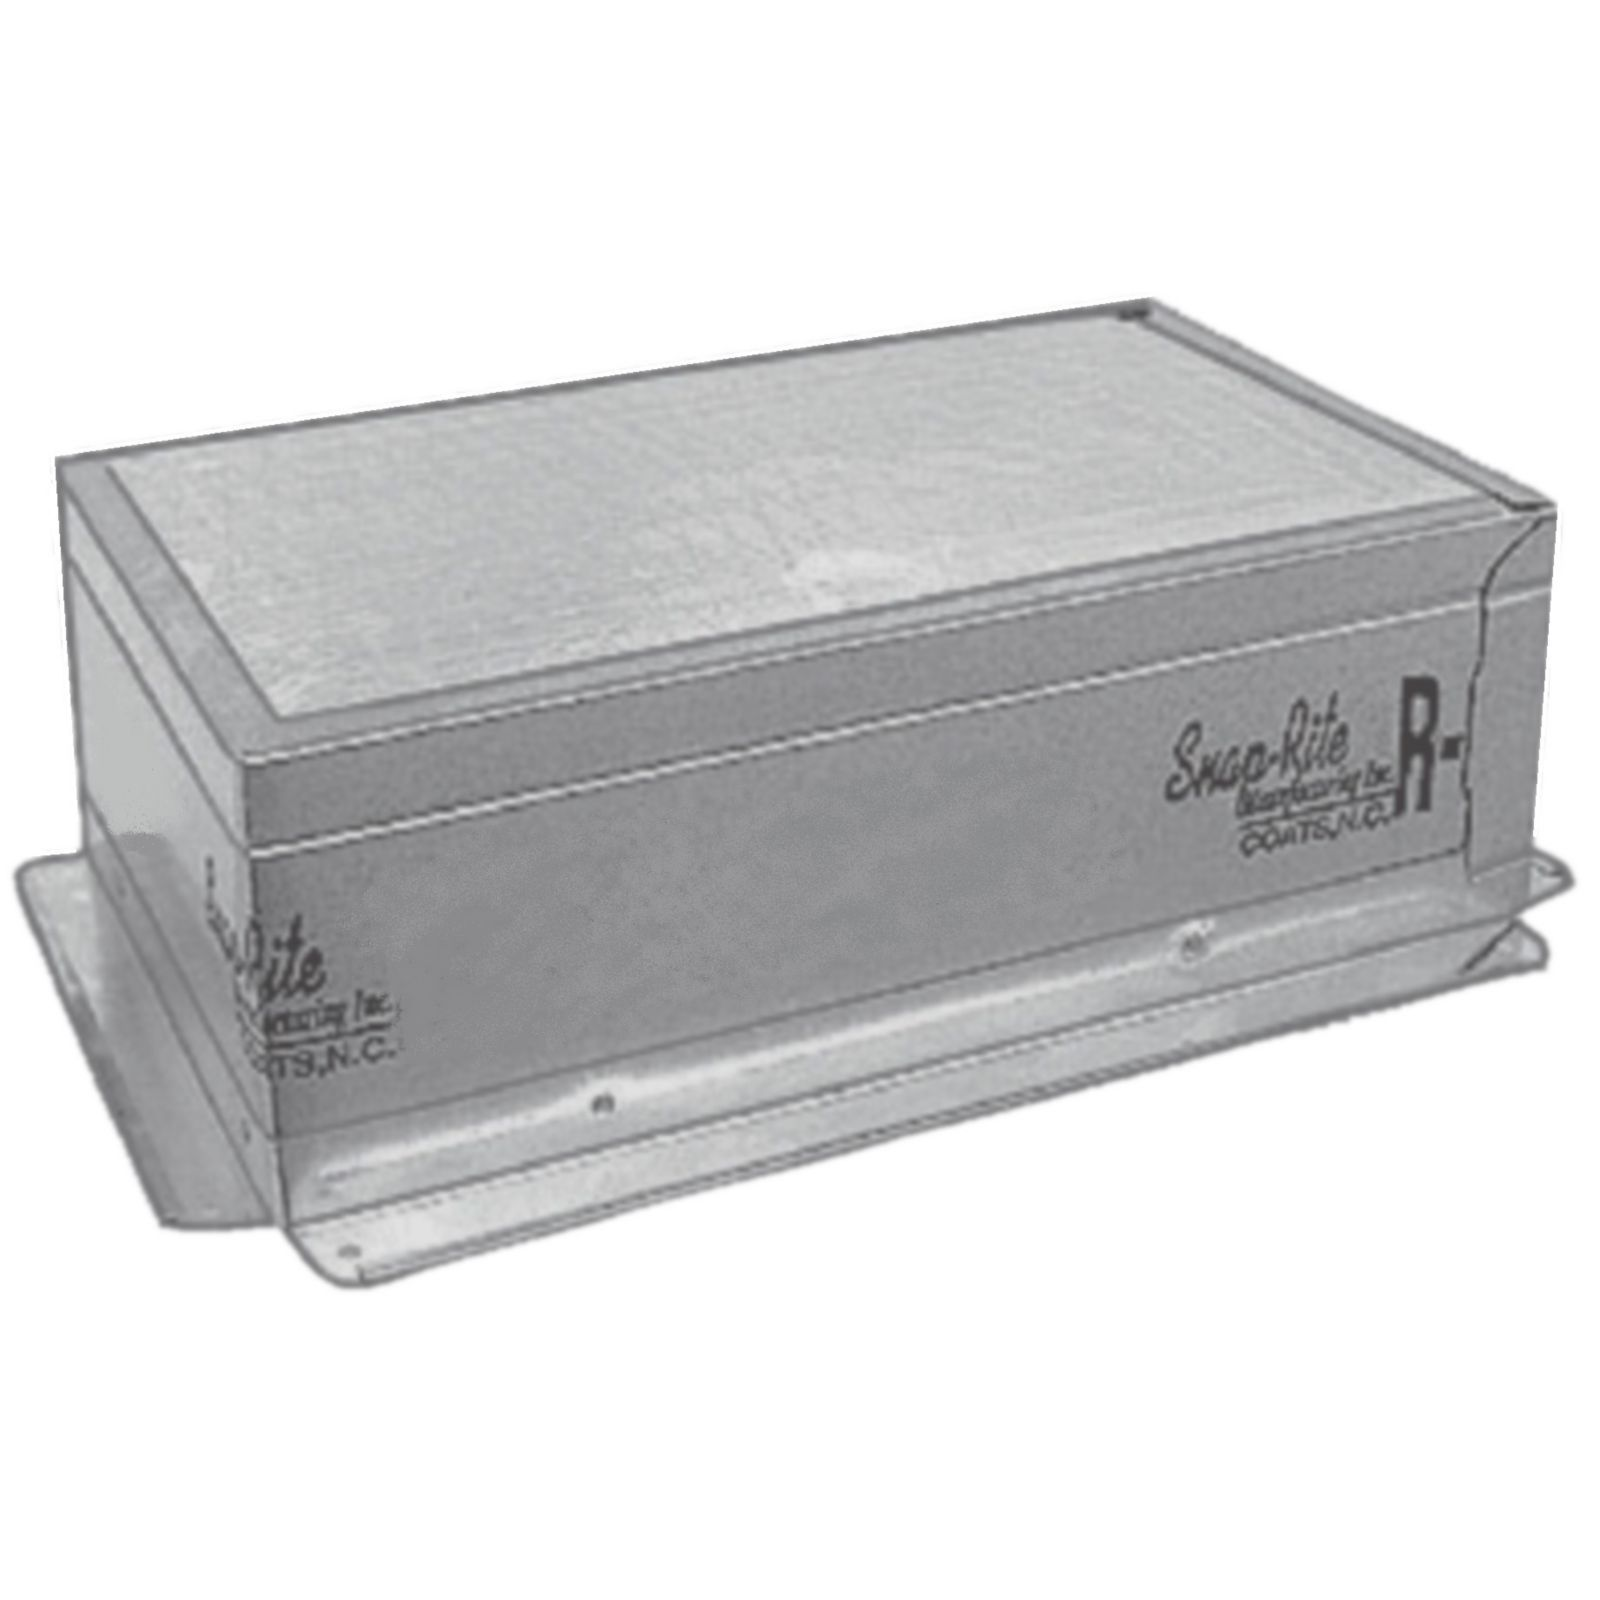 "Snap-Rite 12X06-3800F - Foil Top Insulated Register Box With Flange, 12"" x 06"" - R6"